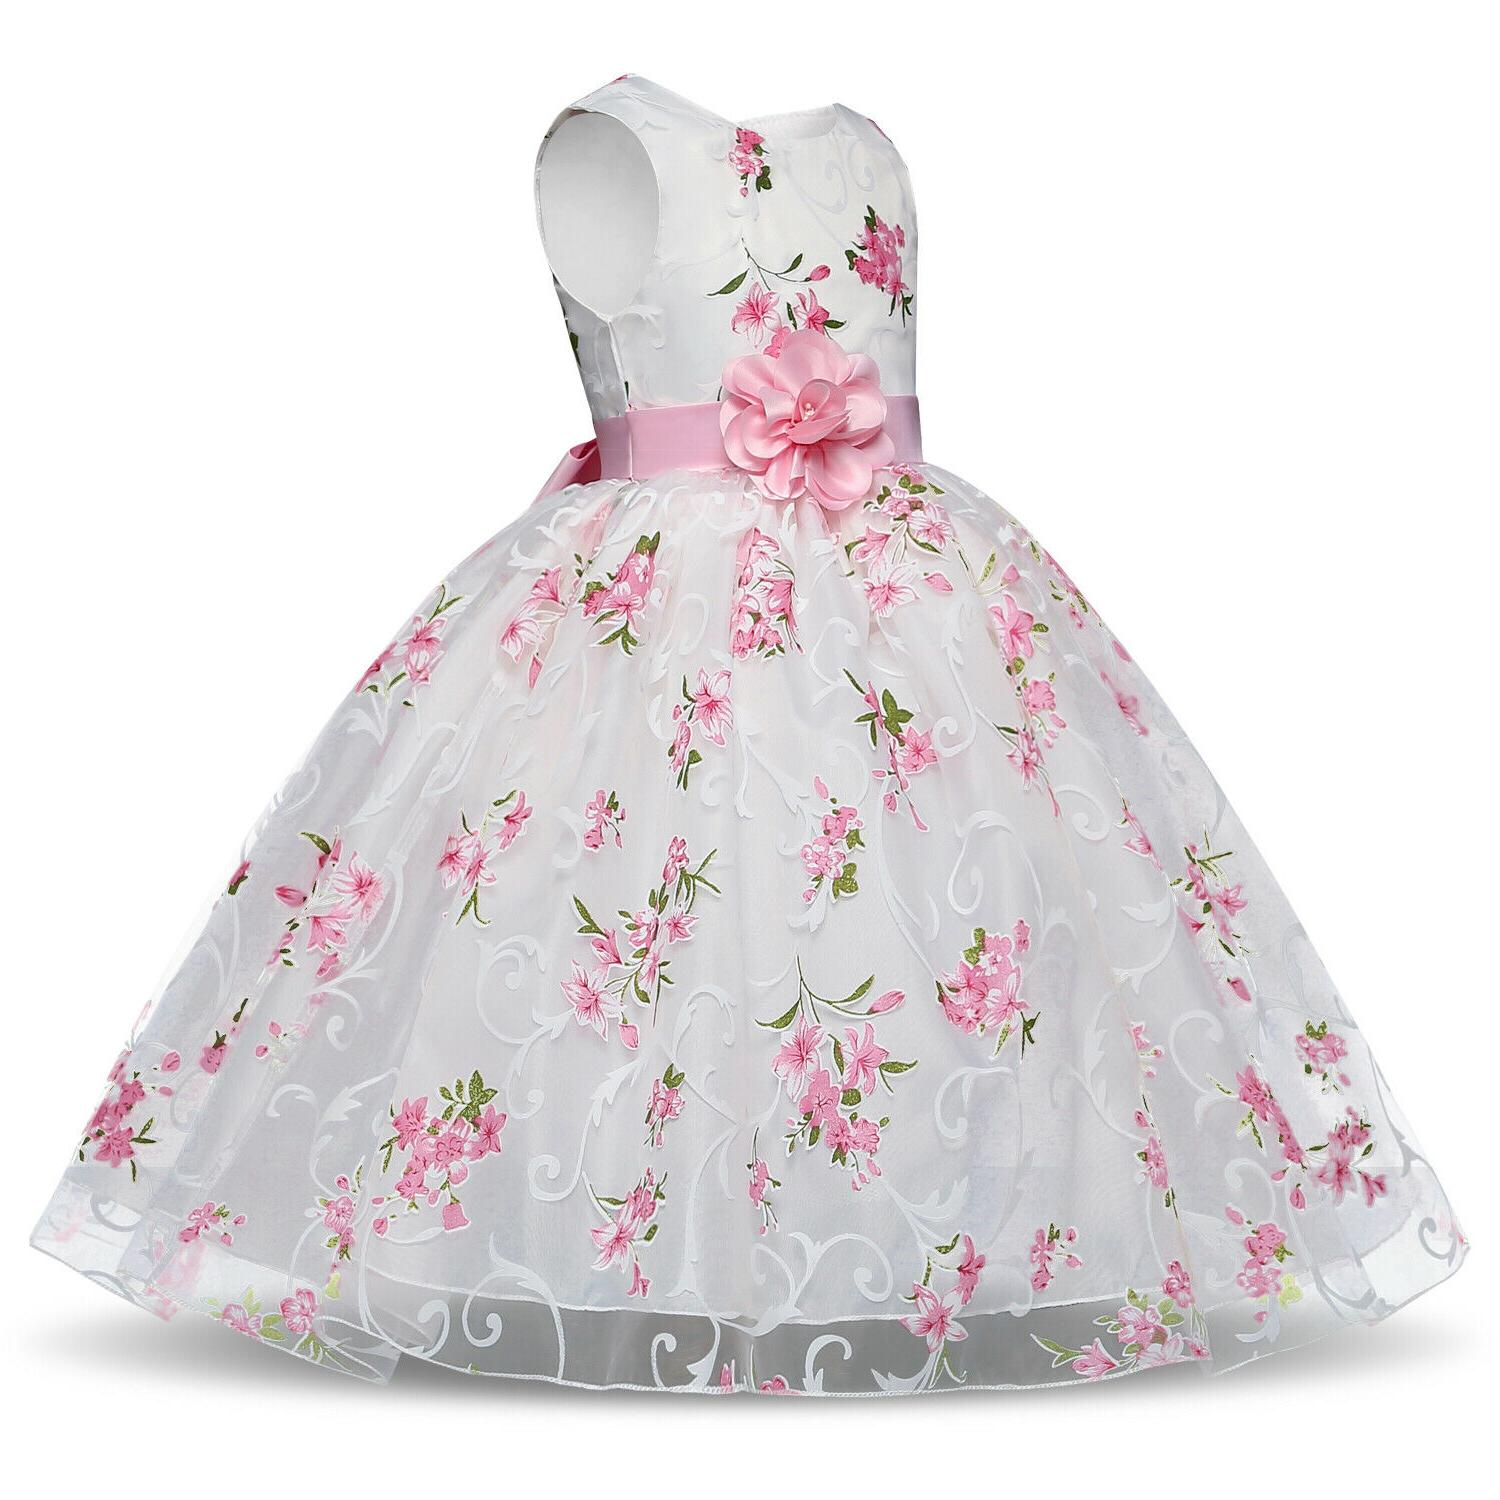 Baby Dress Flower Bridesmaid Gown Size 8T